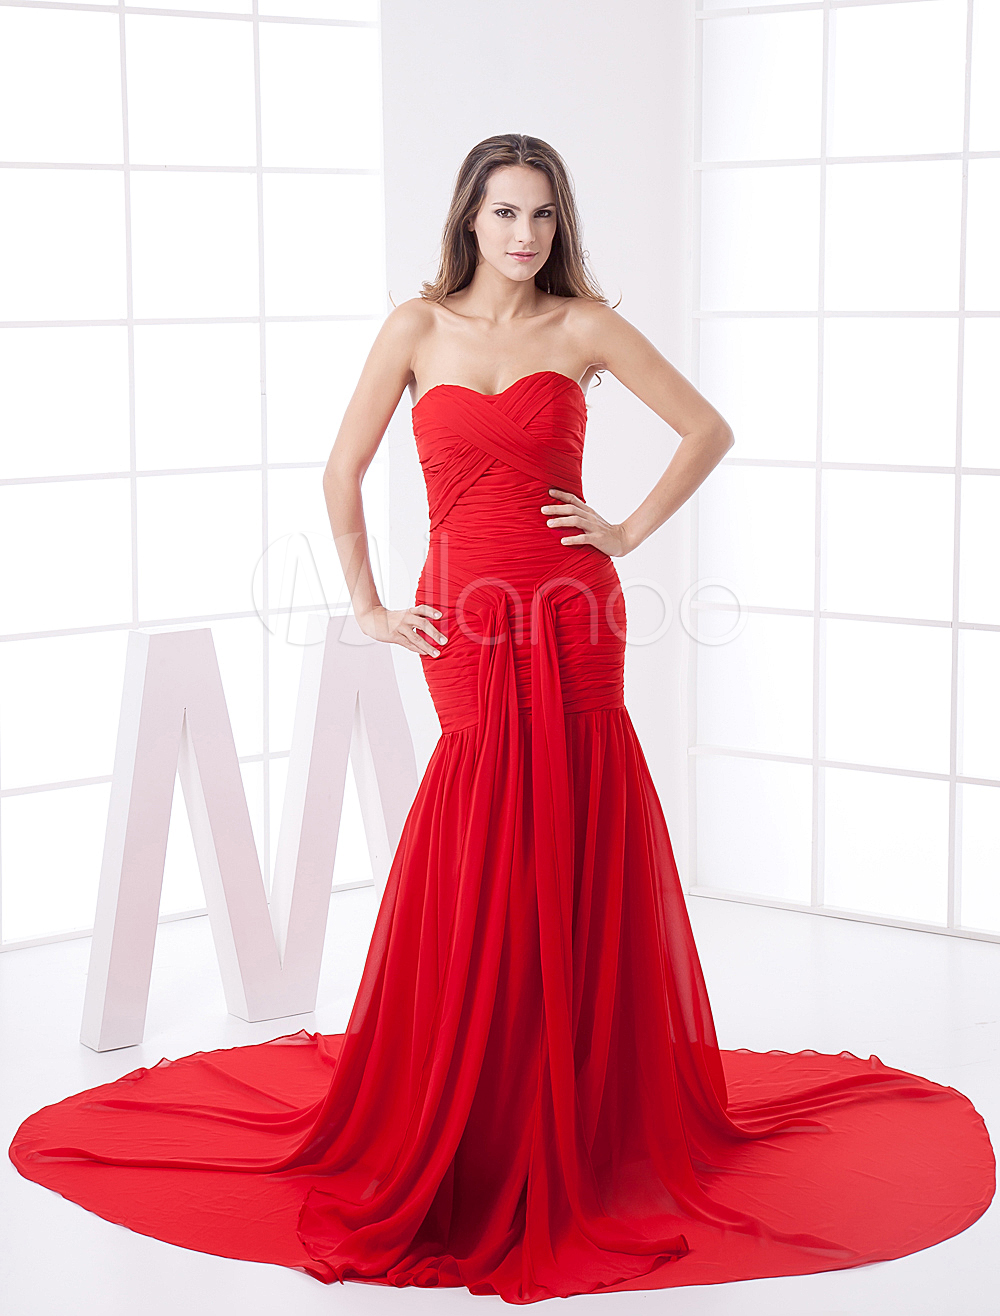 China Wholesale Dresses - Red Chiffon Sweetheart Train Ladies Evening Dress